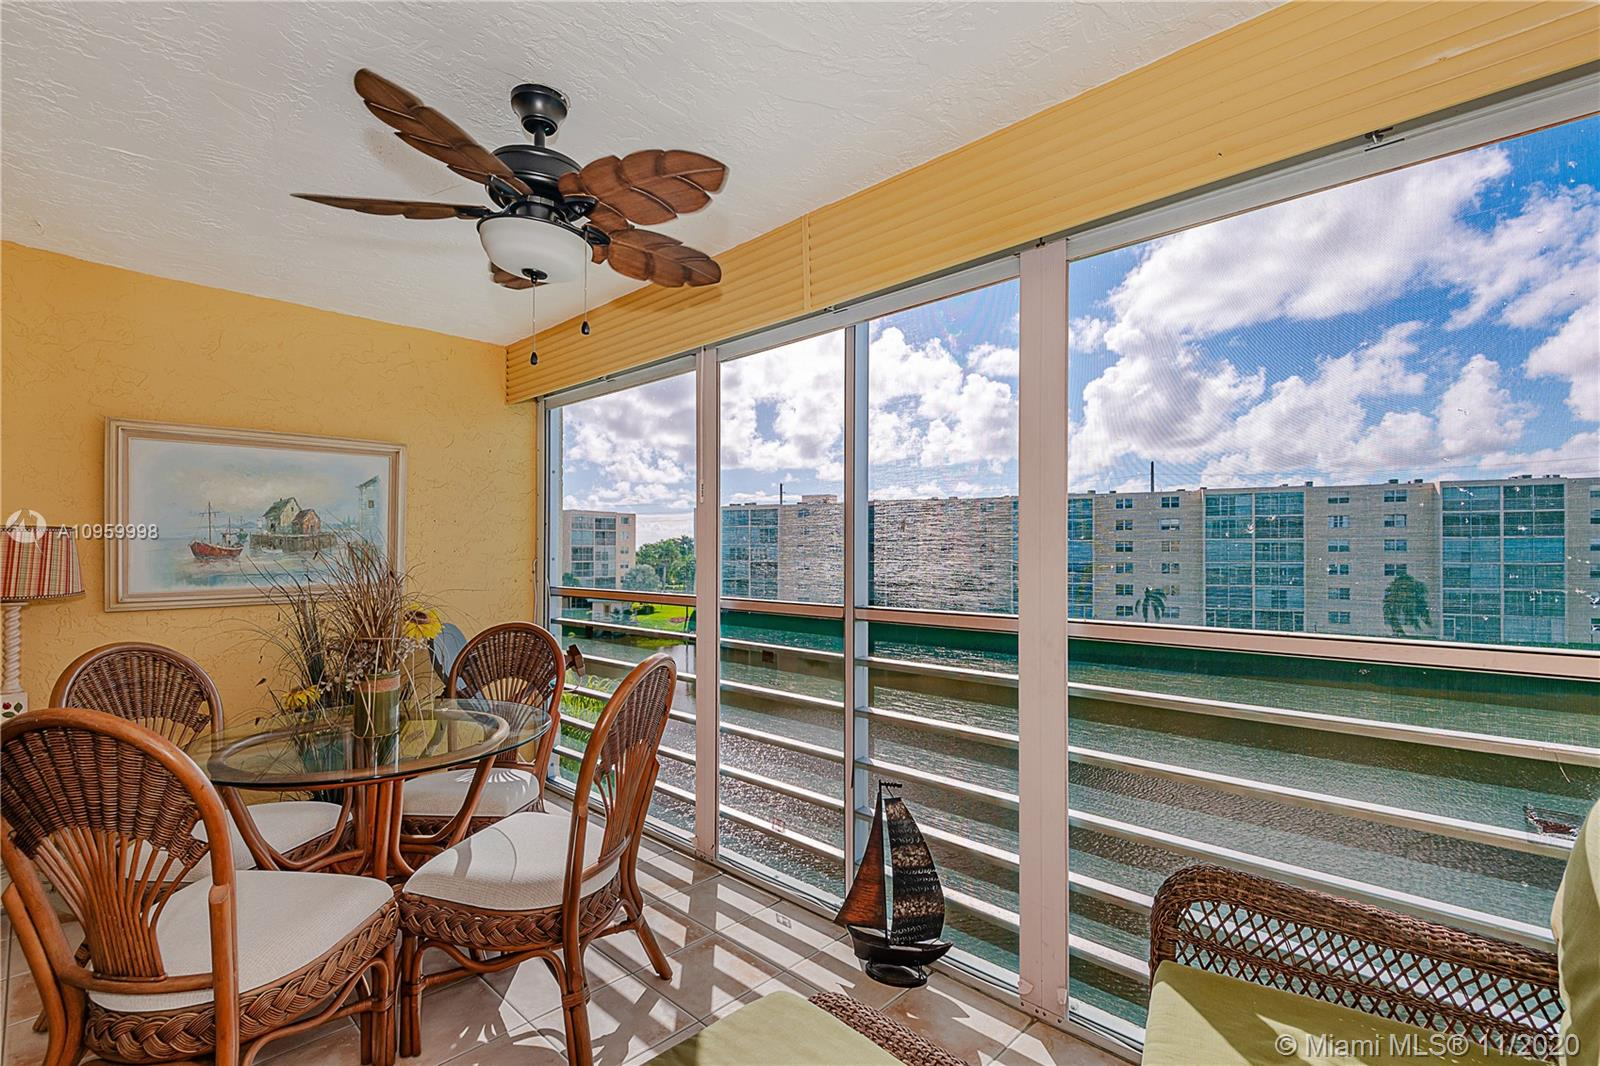 **AVAILABLE RIGHT AWAY IS THIS WELL PRICED UNIT IN DESIRABLE 4TH FLOOR MEADOWBROOK VIEW CONDO OFFERING A HIGHLY DESIRABLE SOUTHERN WATER VIEW FROM THE MASTER BEDROOM AND OVERSIZE, PRIVATE BALCONY** ALL AGES WELCOME**LOW MAINTENANCE FEES, RIDE YOUR BIKE TO THE BEACH, MINUTES FROM SHOPPING PLAZA, AIRPORT, RESTAURANTS AND MUCH MORE...FOREIGN SELLER SO THIS ONE IS SOLD COMPLETELY FURNISHED.